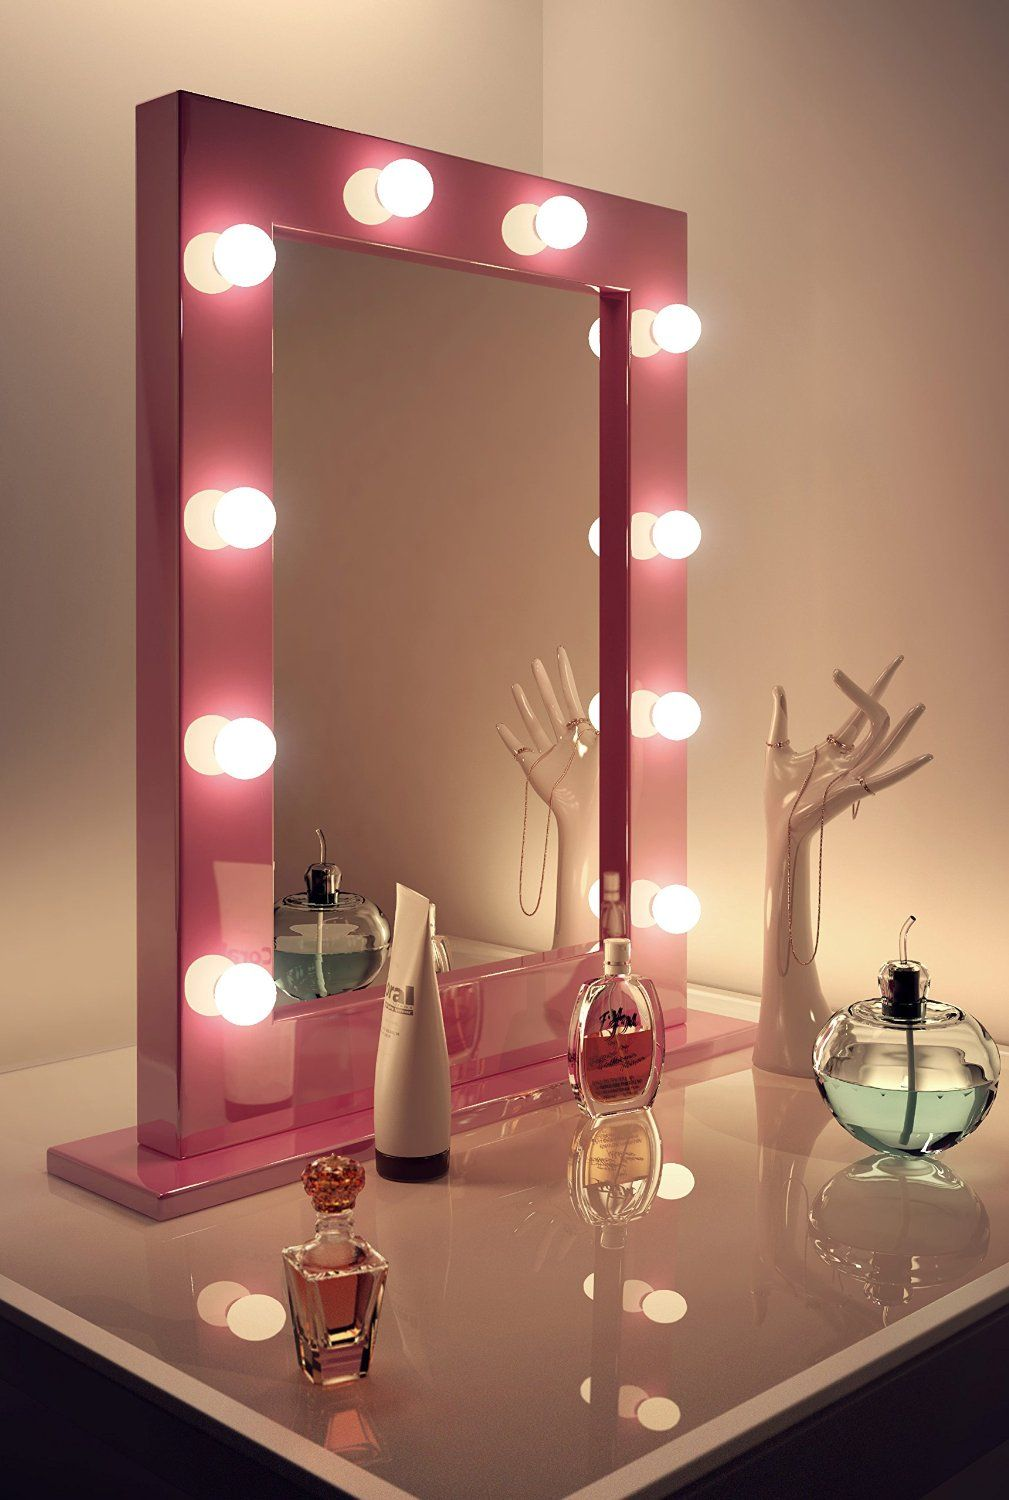 Pink Hollywood Make Up Theatre Dressing Room Mirror k153: Amazon.co ...